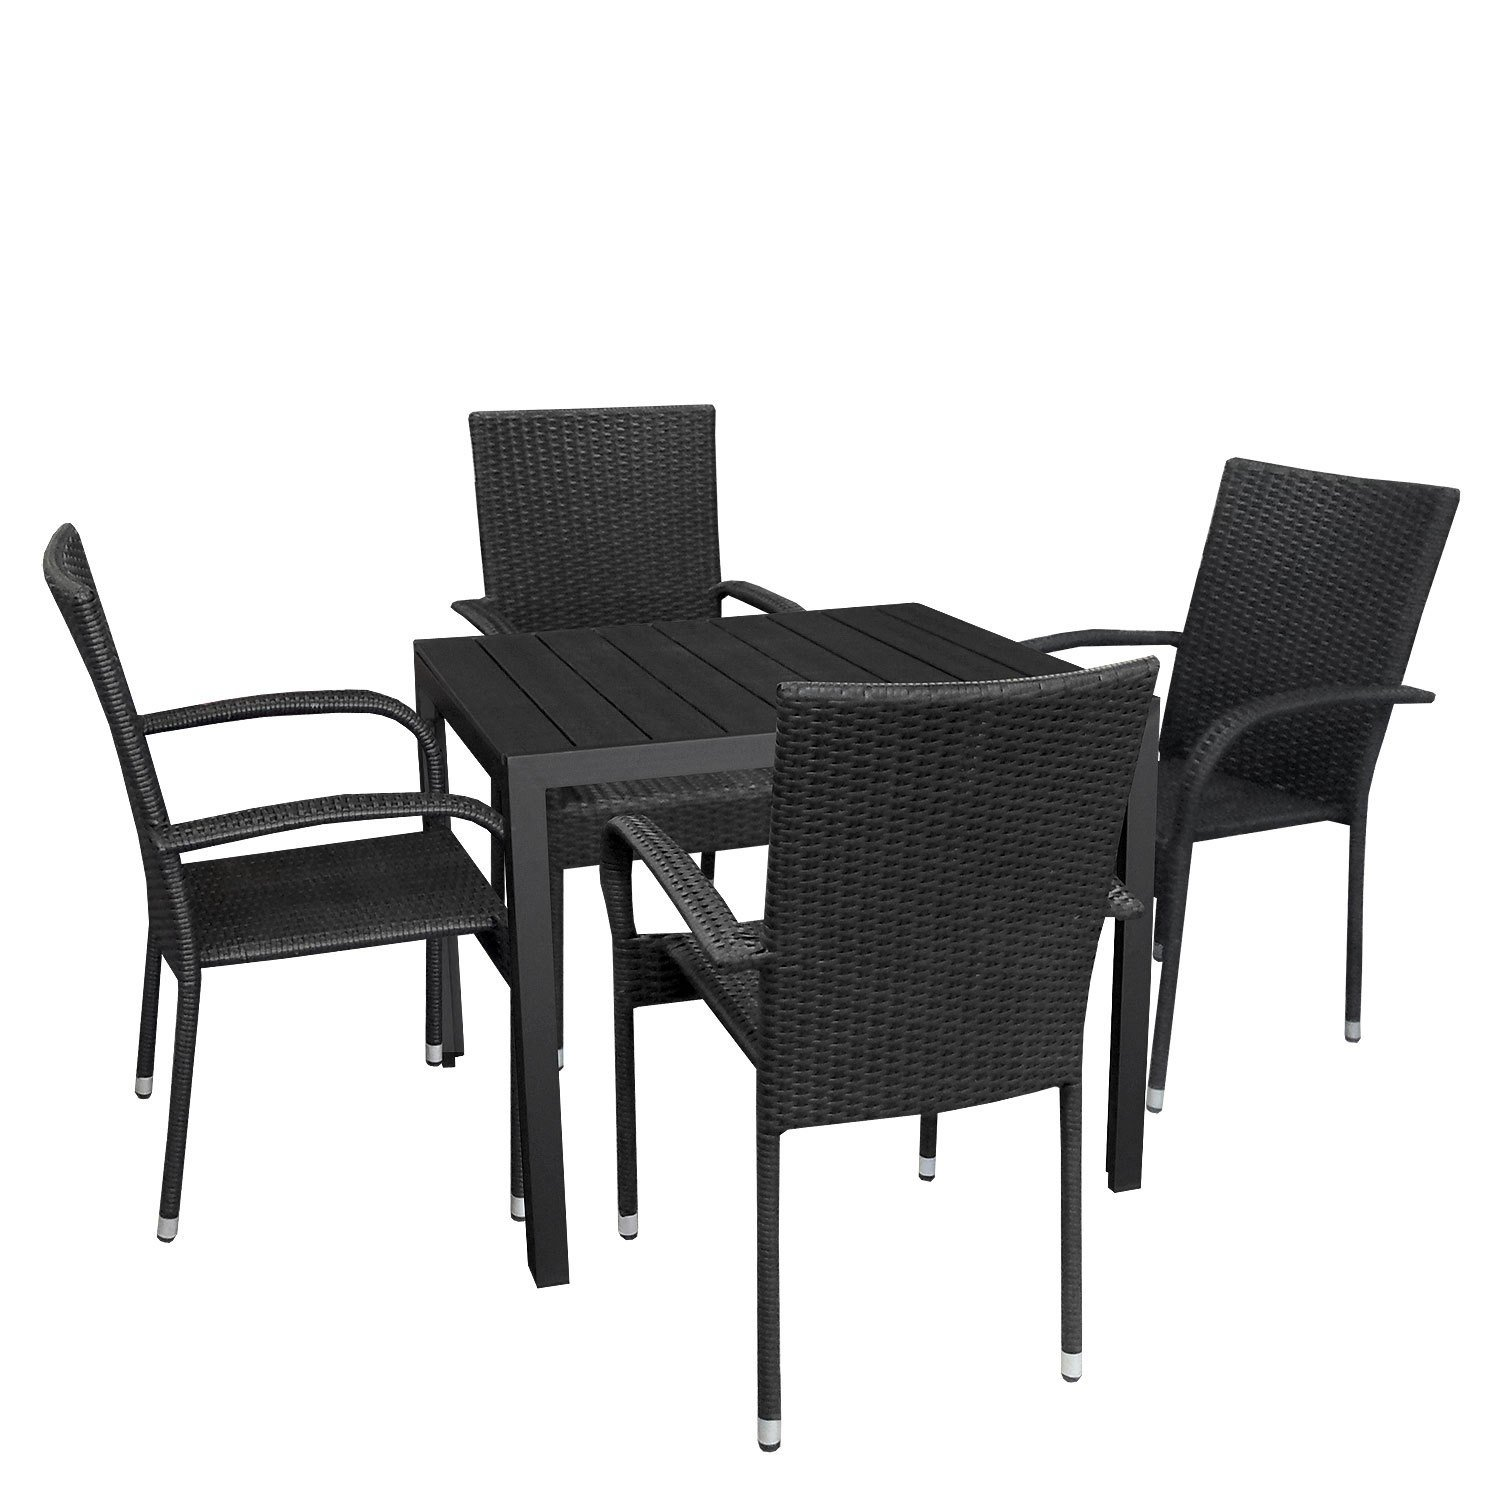 5tlg gartengarnitur aluminium bistrogarnitur polywood gartentisch 90x90cm poly rattansessel. Black Bedroom Furniture Sets. Home Design Ideas